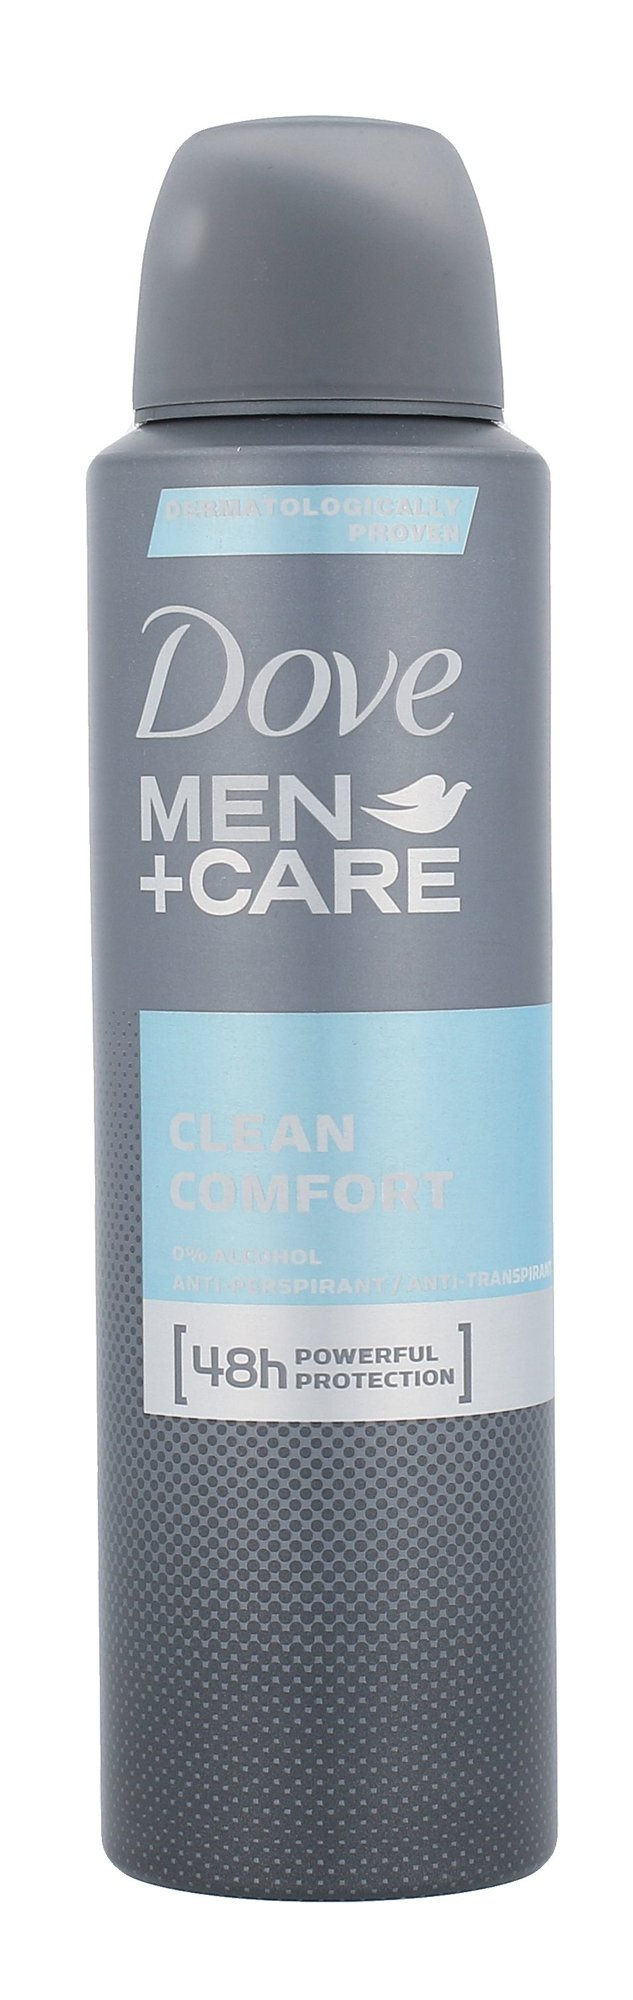 Dove Men + Care Cosmetic 150ml